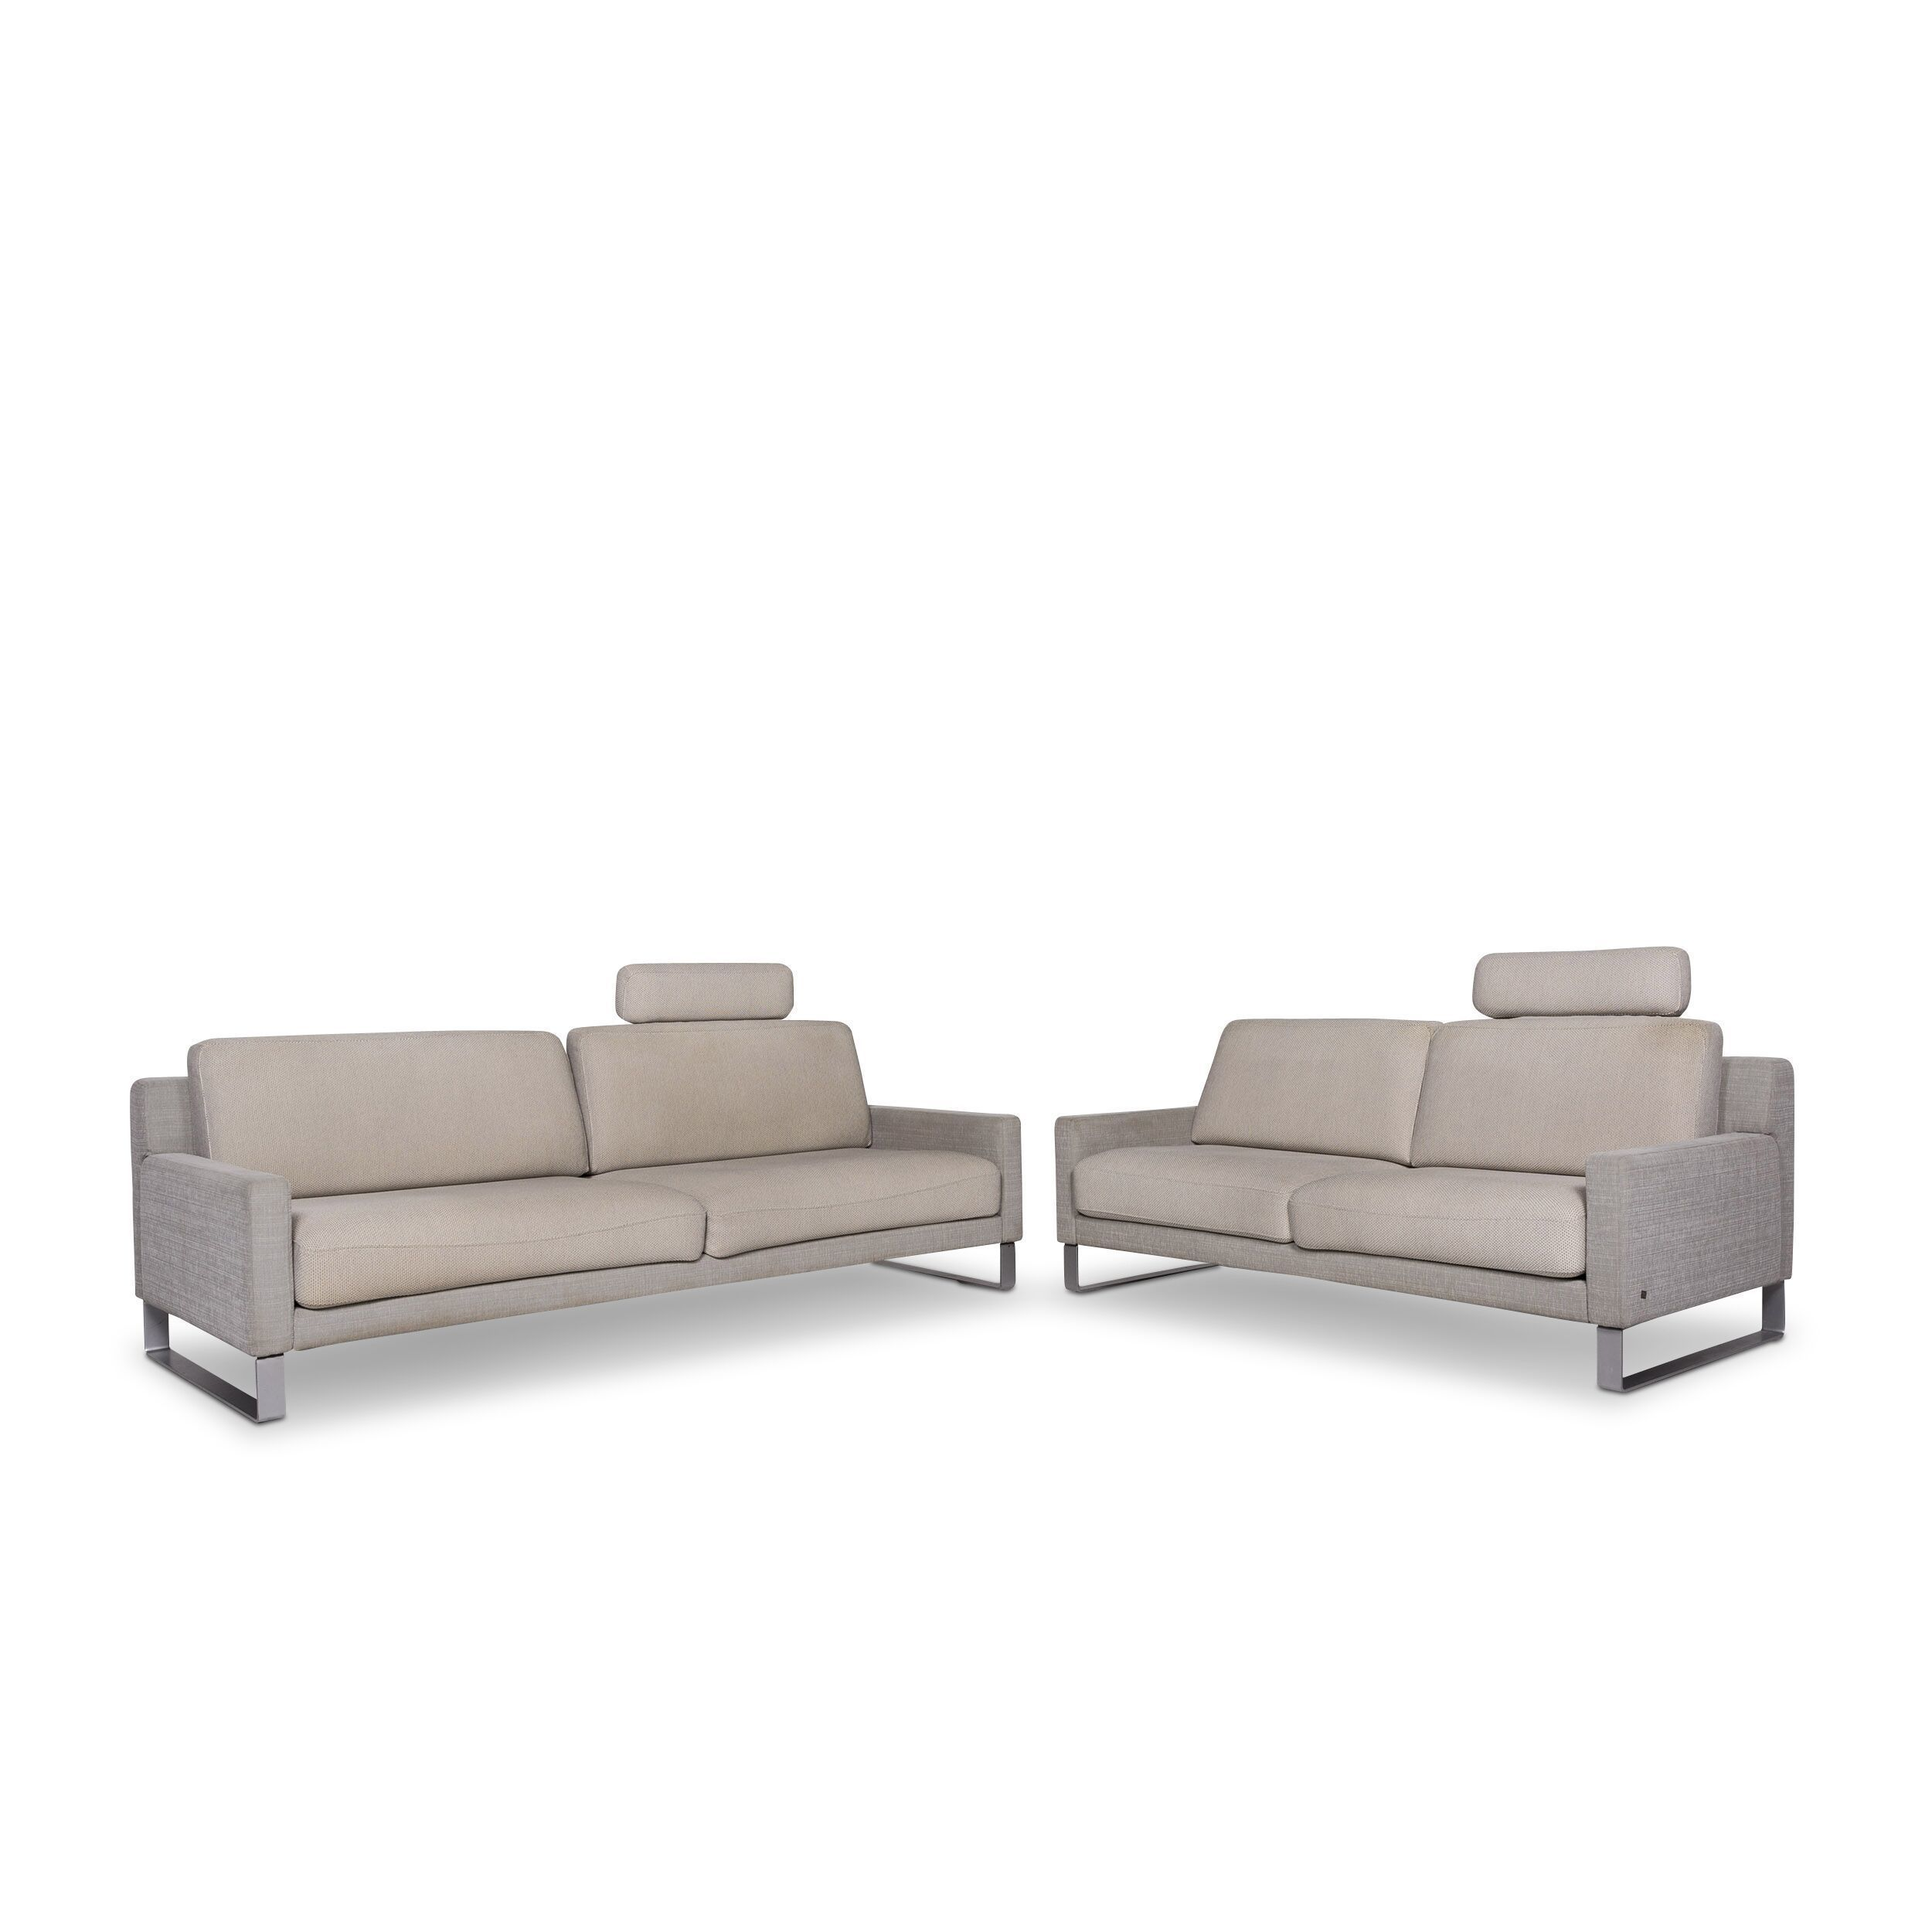 Rolf Benz Ego Designer Sofa Set Cream 1x Three Seater 1x Two Seater Couch 9904